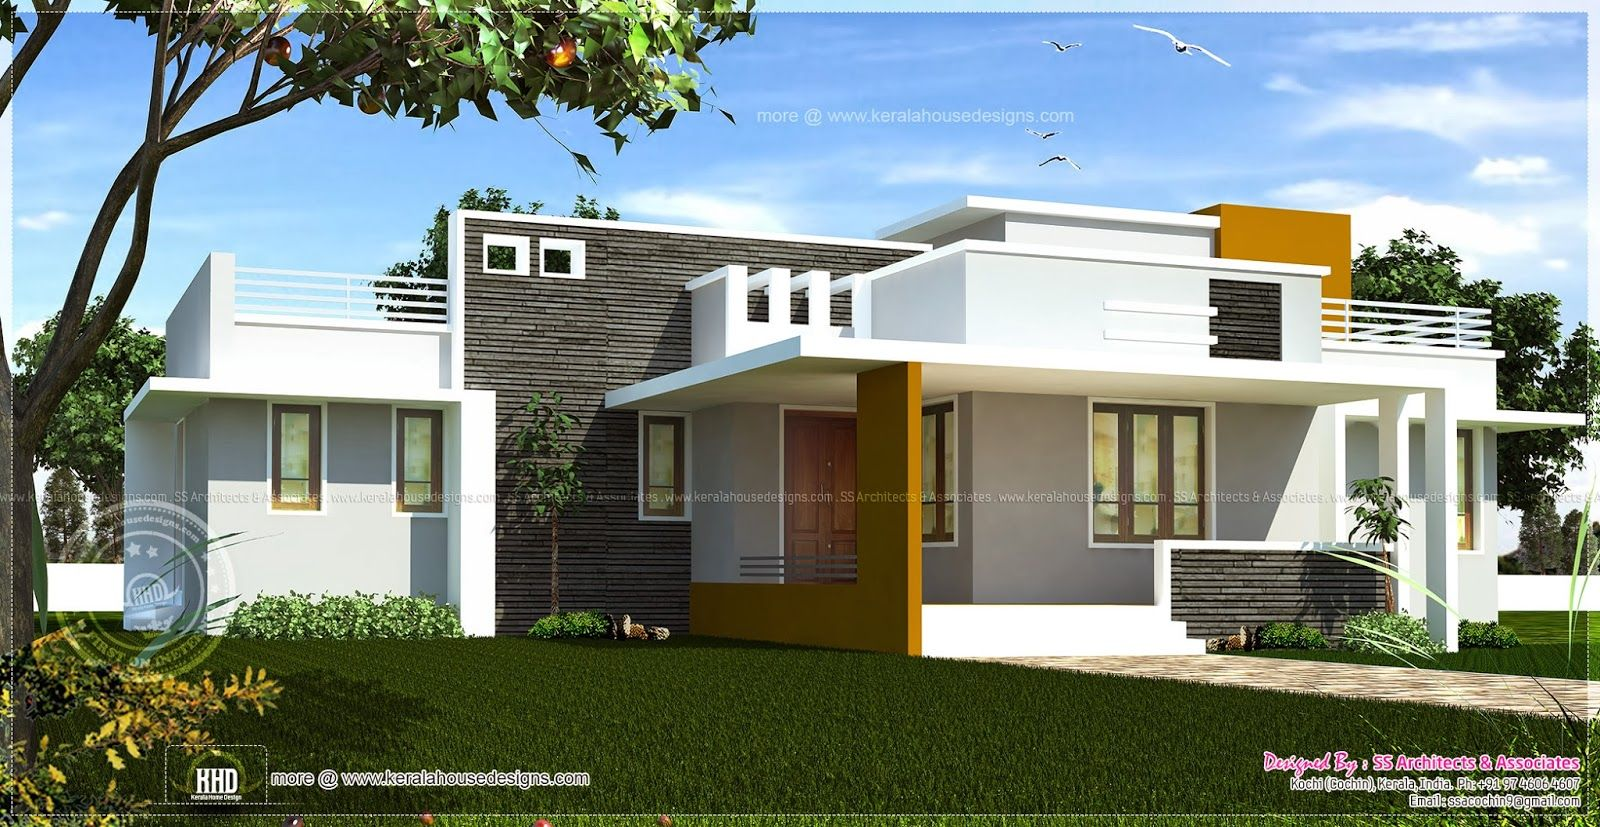 Excellent single home designs single floor contemporary for Single floor house